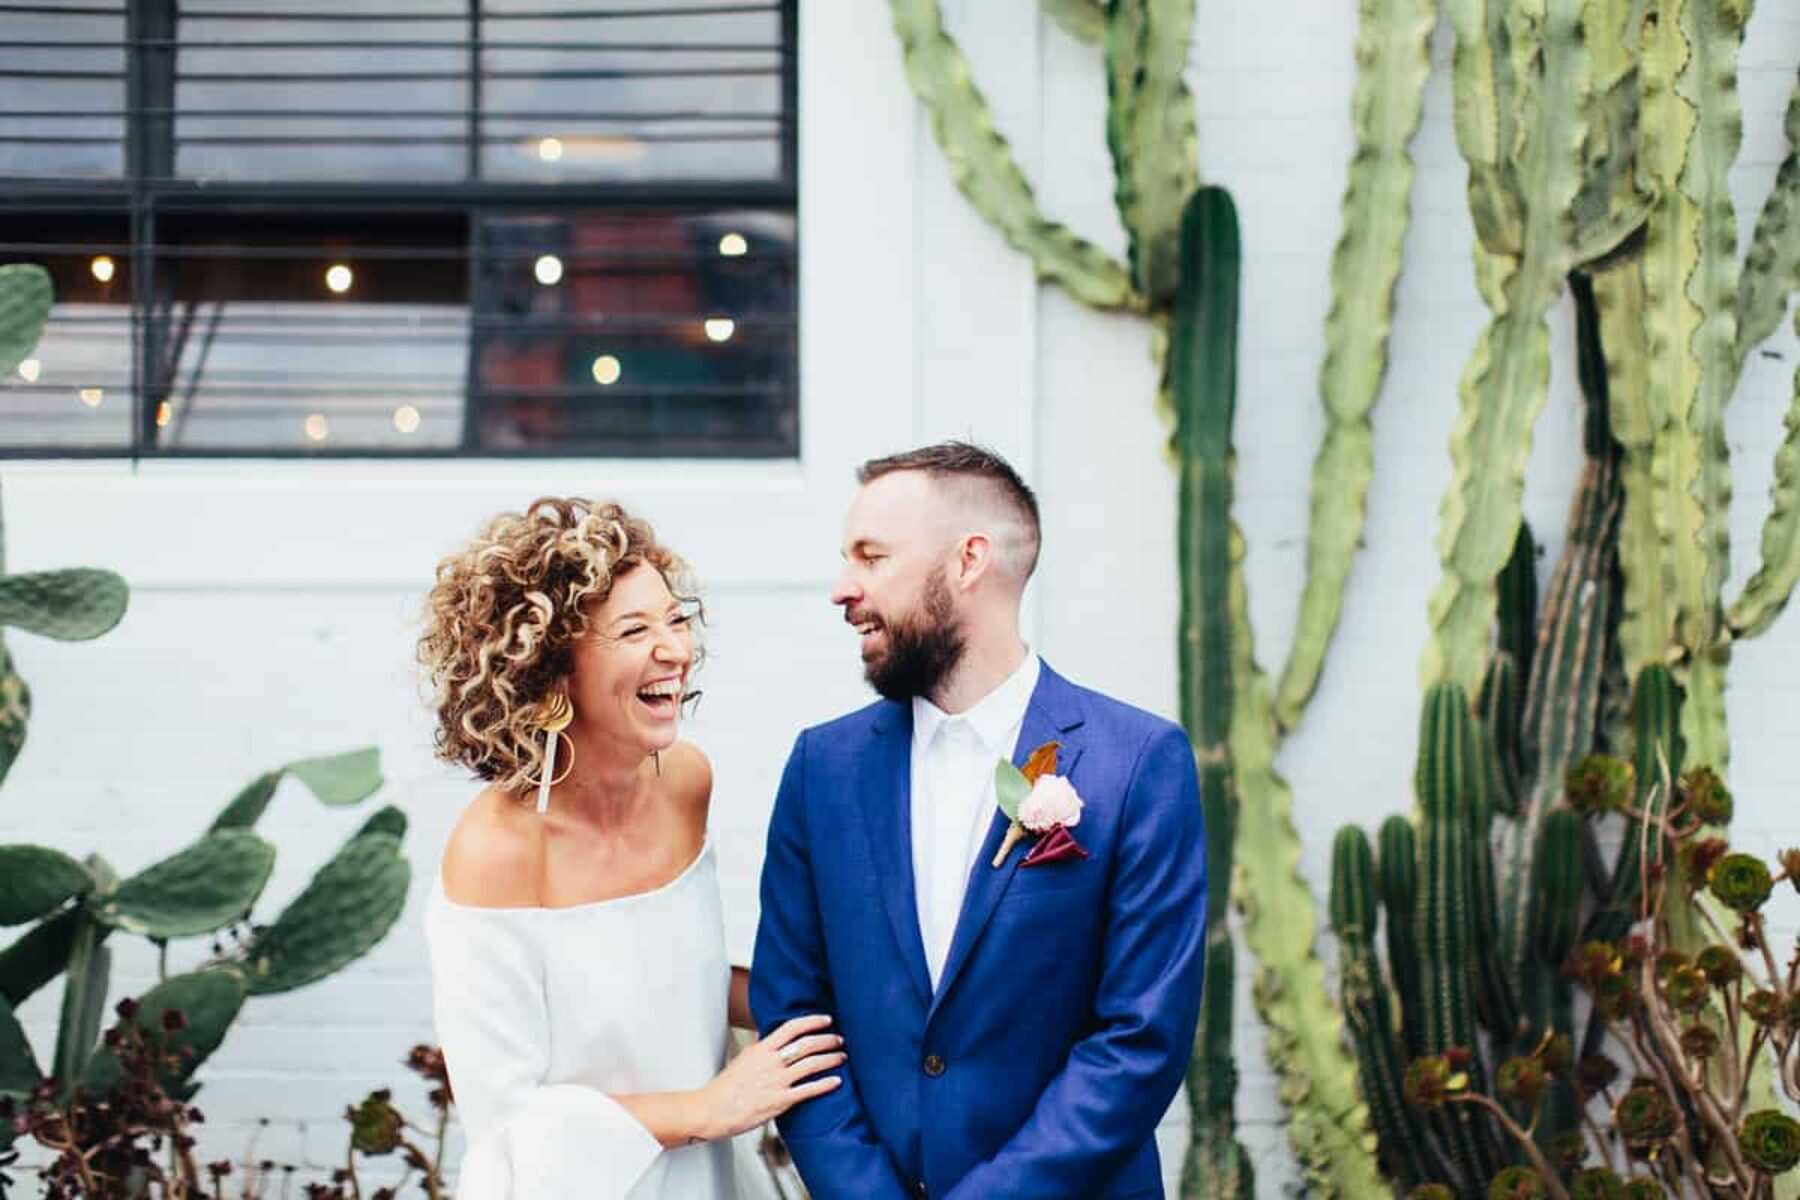 edgy Melbourne wedding at Gather & Tailor